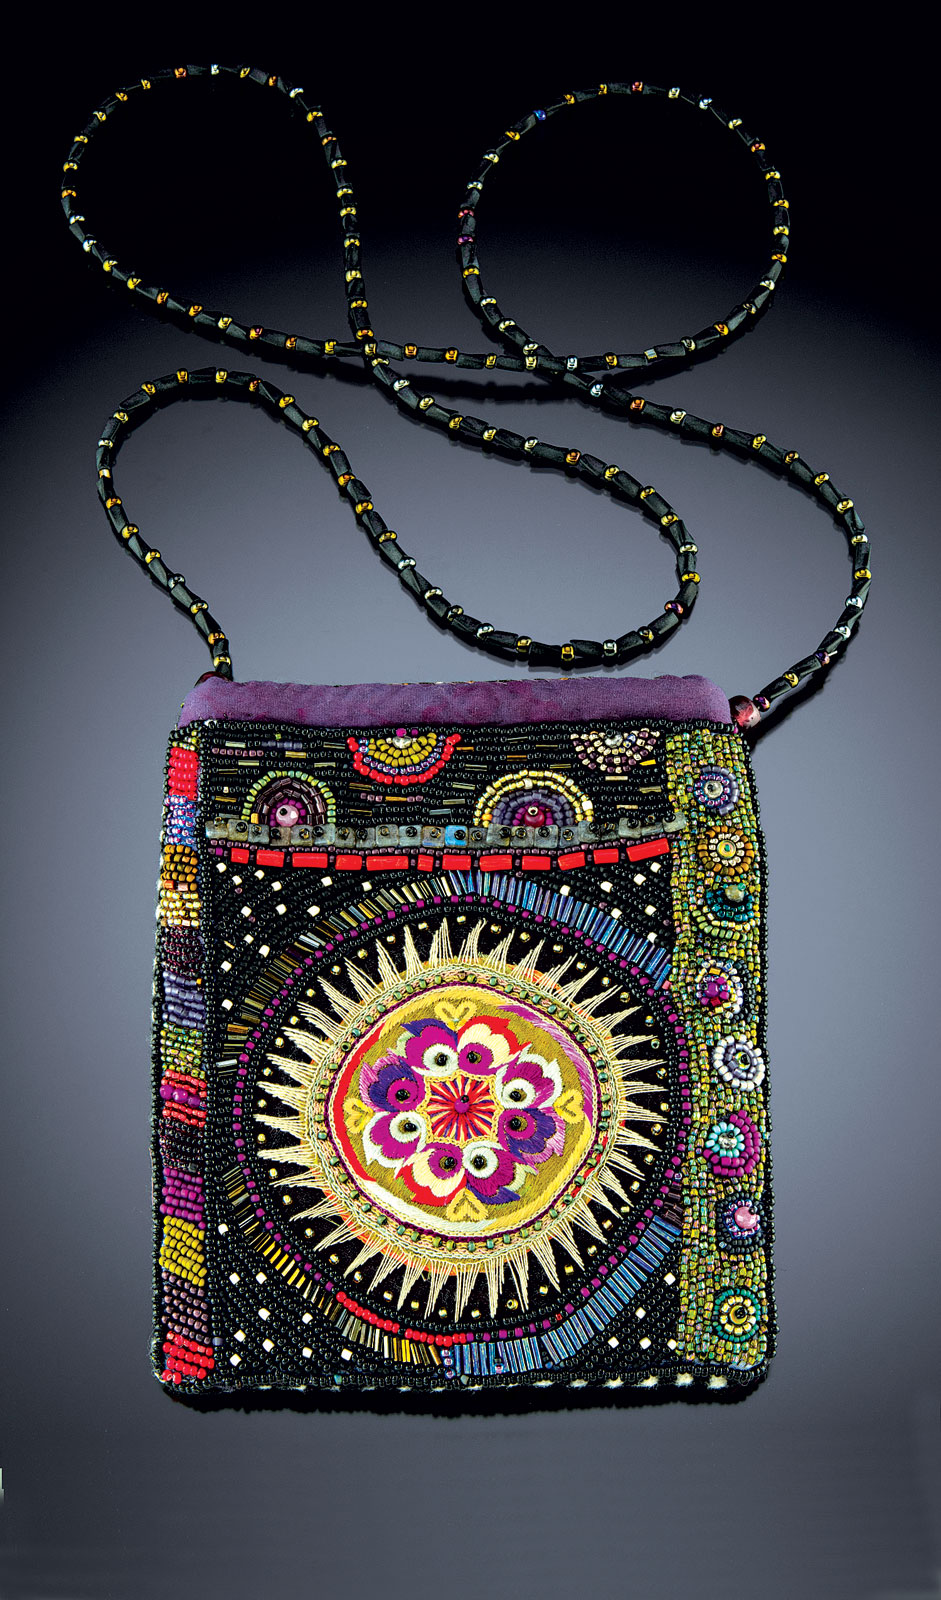 SHANGHAI BAG of glass seed beads embroidered with a needle and fishing line, embellished with coral, labradorite and fire-polished glass; lined in silk, and backed with Italian wool, 13 centimeters x 15 centimeters with 112 centimeters hand-beaded strap, 2016.